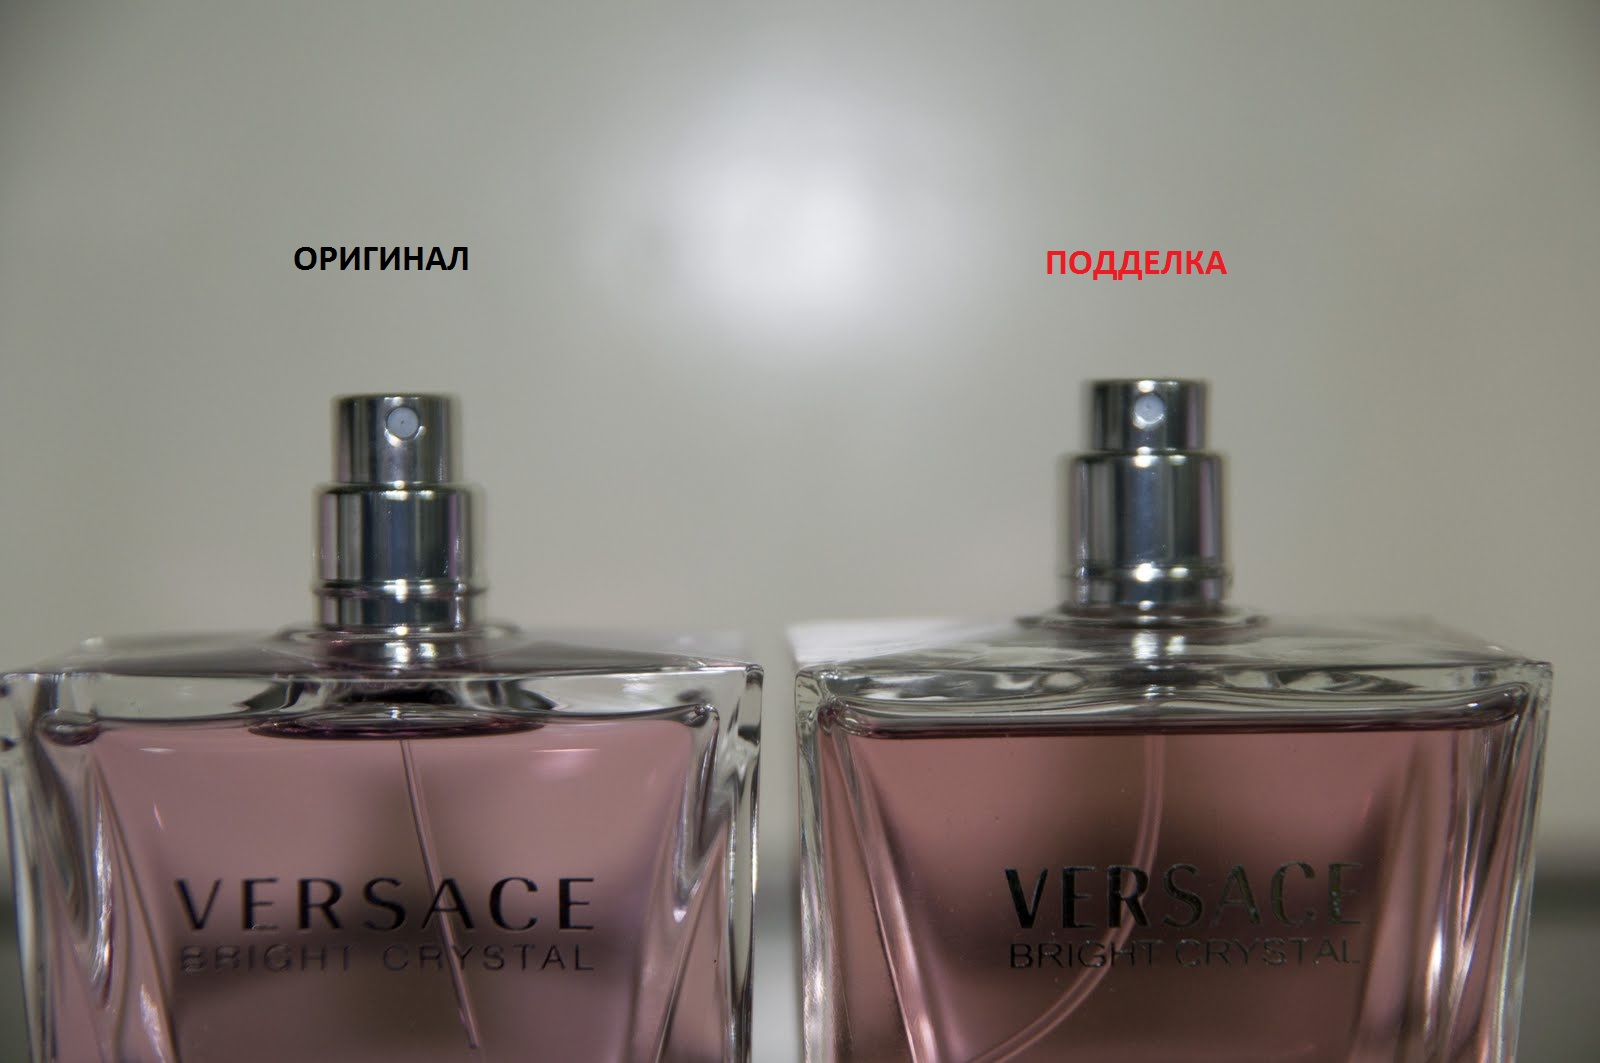 9 Simple Ways To Tell An Authentic Perfume From A Fake